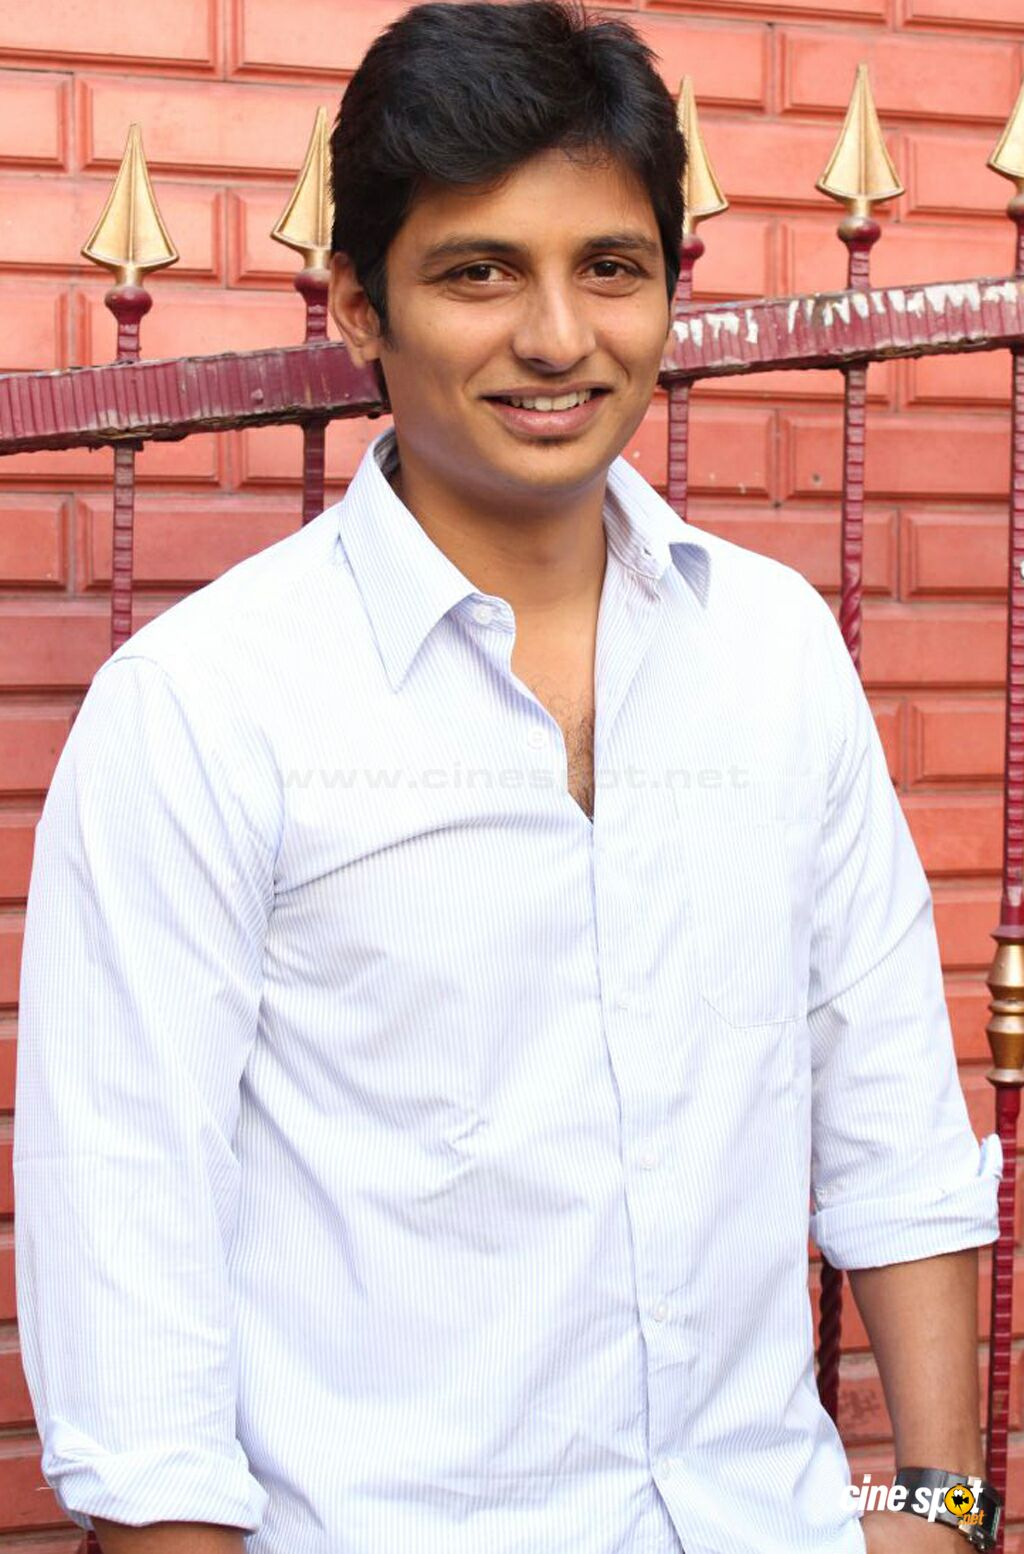 Bollywood Actors Jeeva Tamil Actor Photos 1024 X 680 68 Kb Jpeg